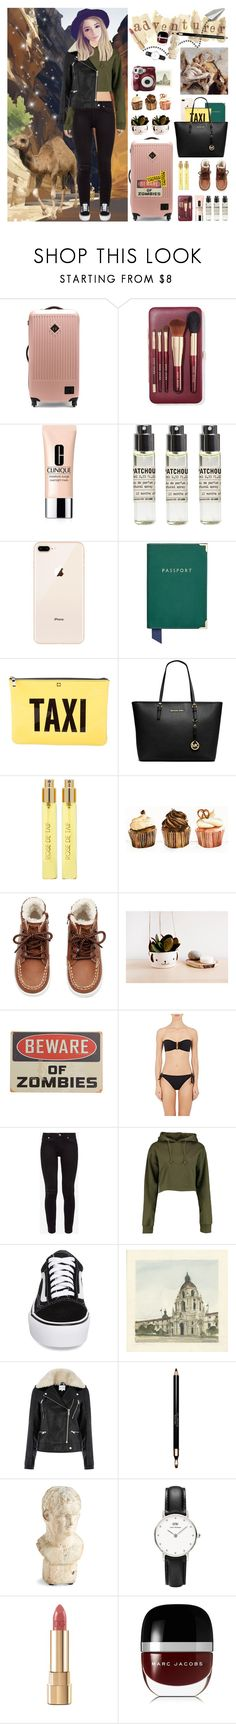 """""""airport hoodies style"""" by thymagine ❤ liked on Polyvore featuring Herschel Supply Co., Bobbi Brown Cosmetics, Clinique, Le Labo, Aspinal of London, Kate Spade, Michael Kors, Perris Monte Carlo, H&M and Eres"""